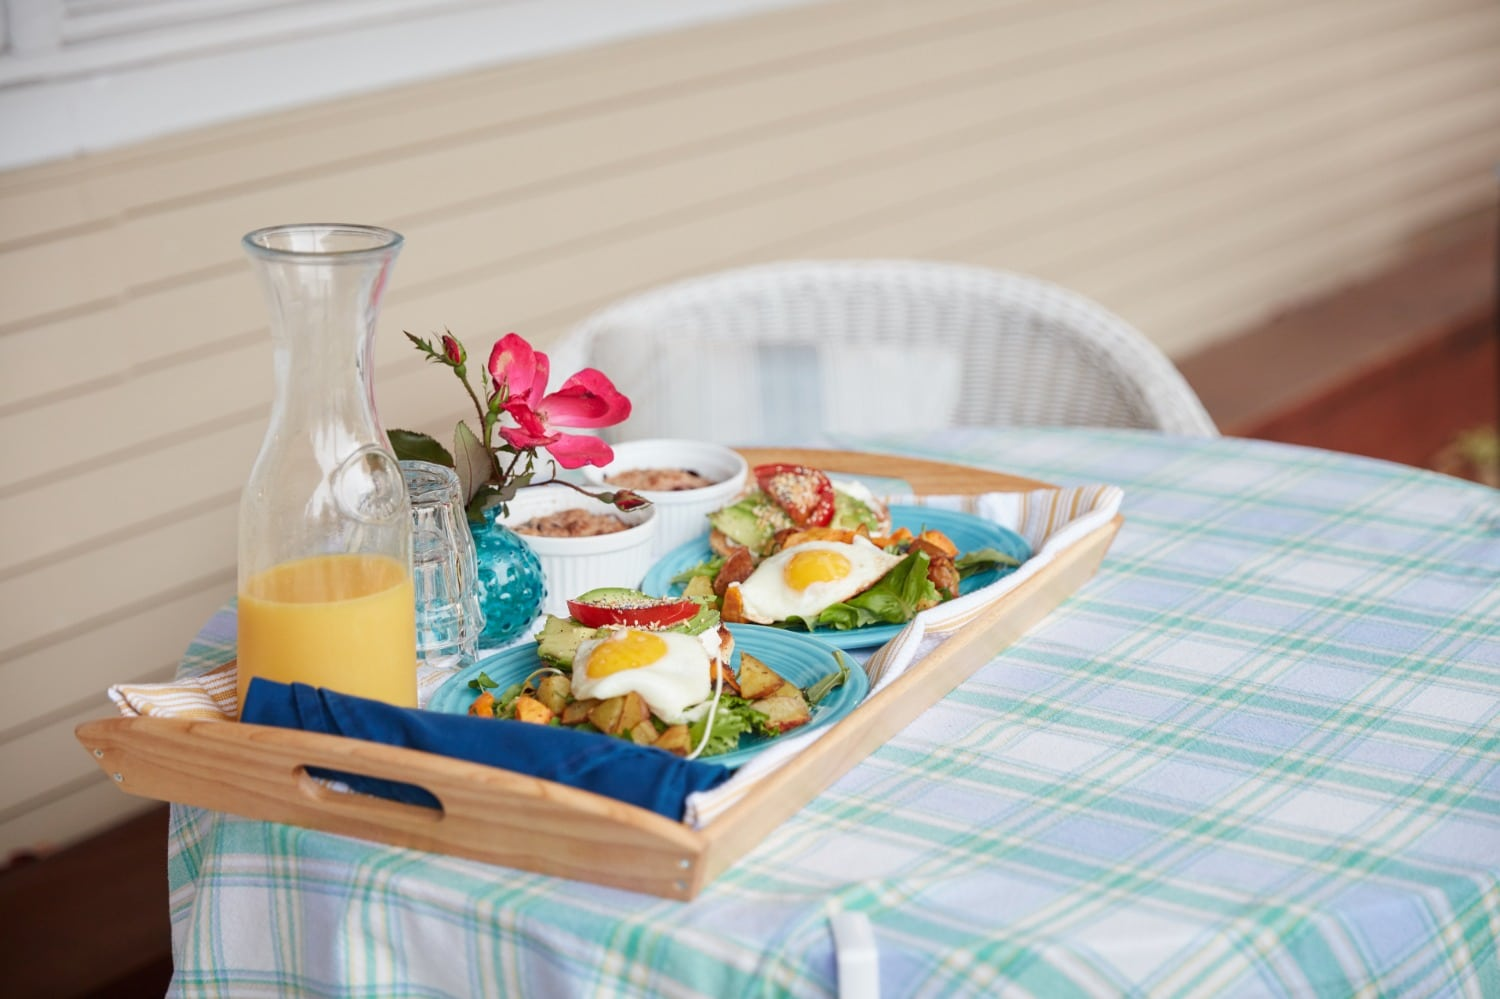 GABB Complete Breakfast Tray Serve on Porch Table. Harrison. 2020 (1)